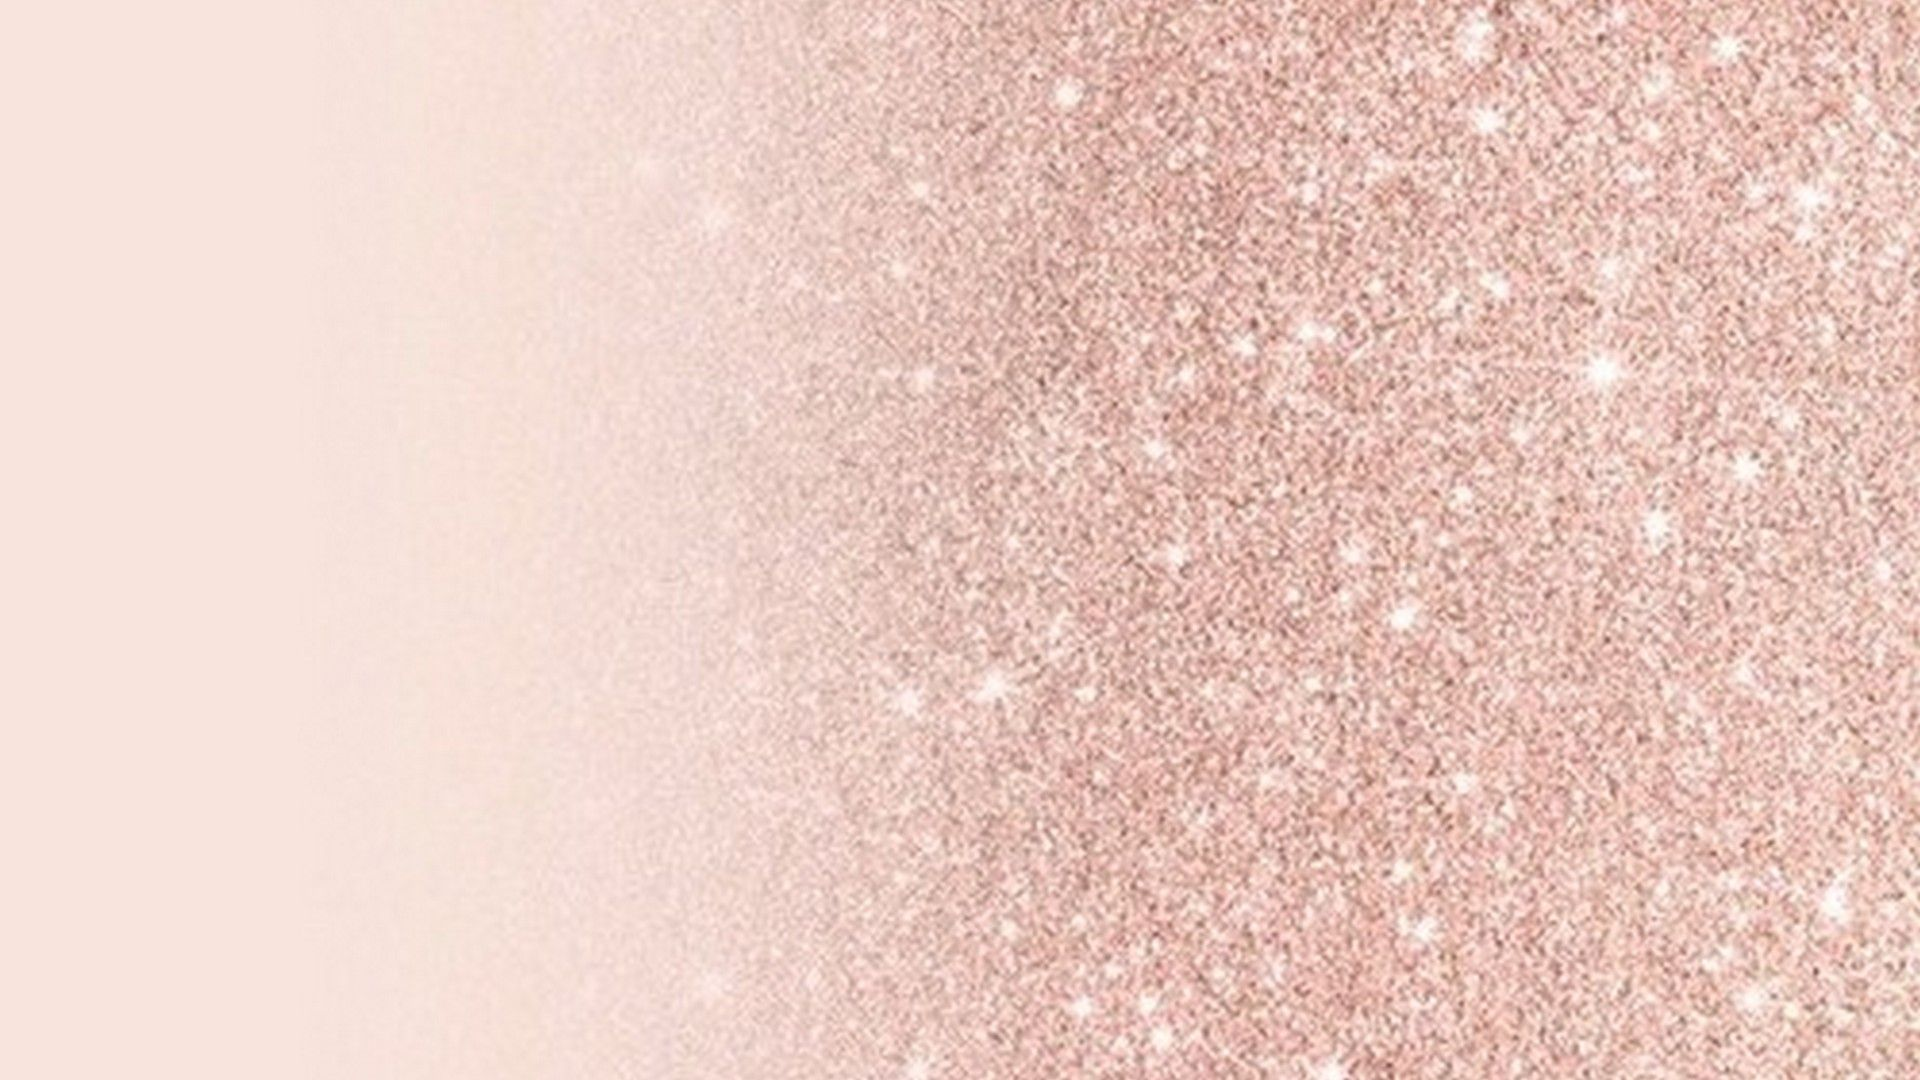 Wallpaper Rose Gold Glitter Desktop Best HD Wallpapers